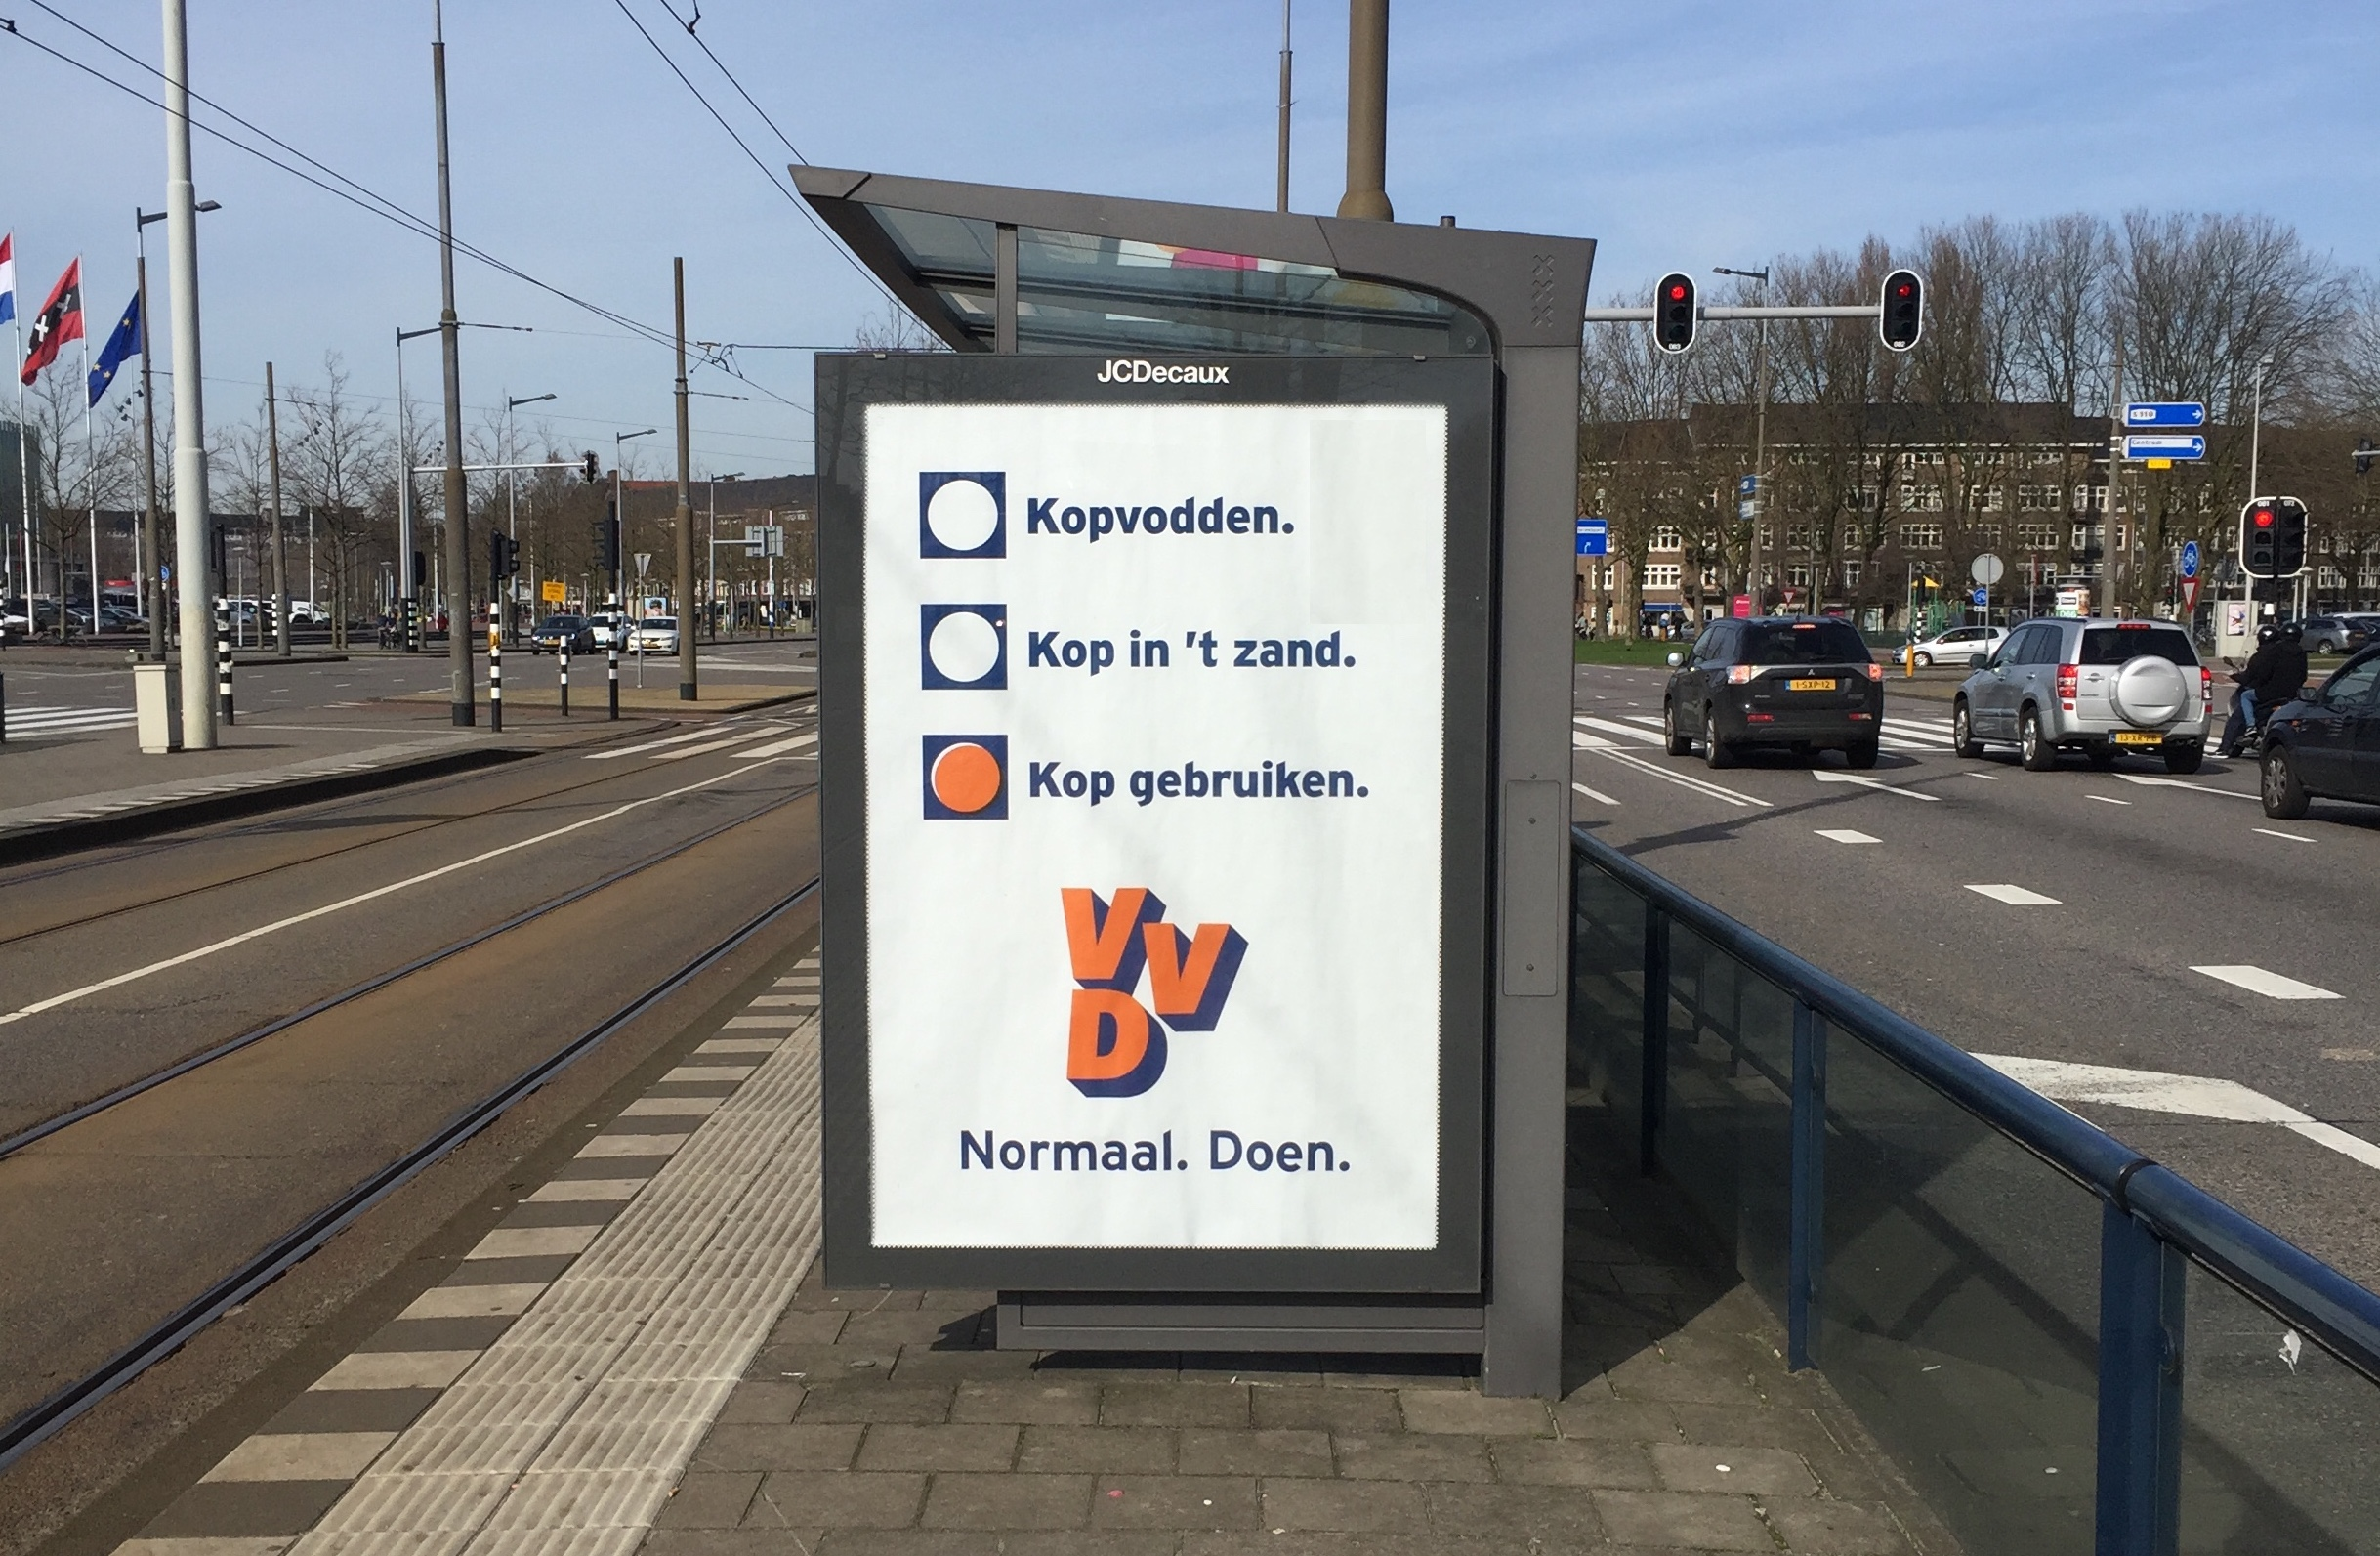 VVD, marketingcampagne, verkiezing, D66, Rutte, optimist